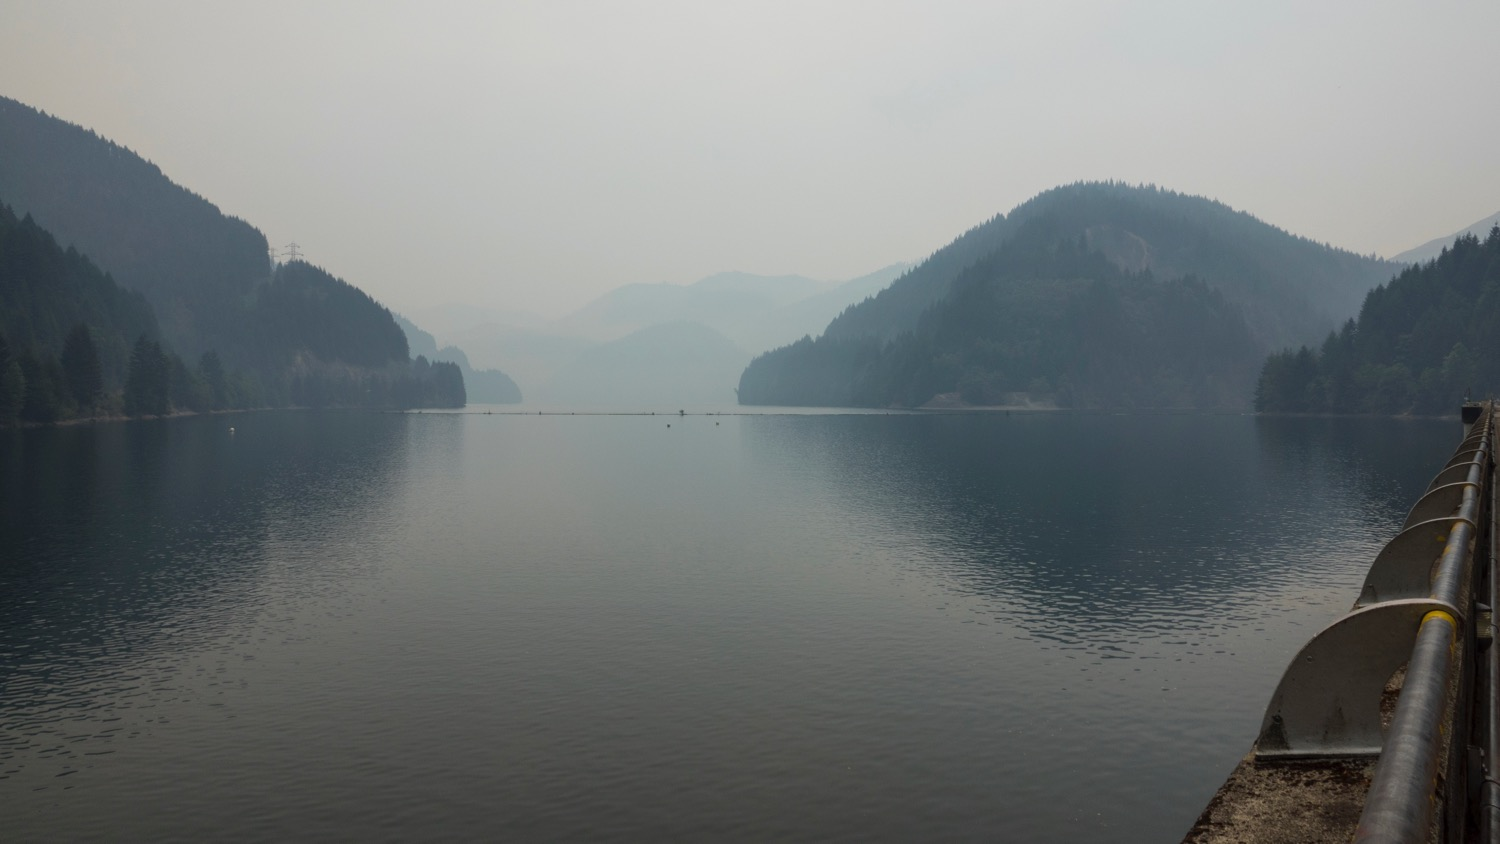 Looking out from the dam, you could barely see the surrounding hills.